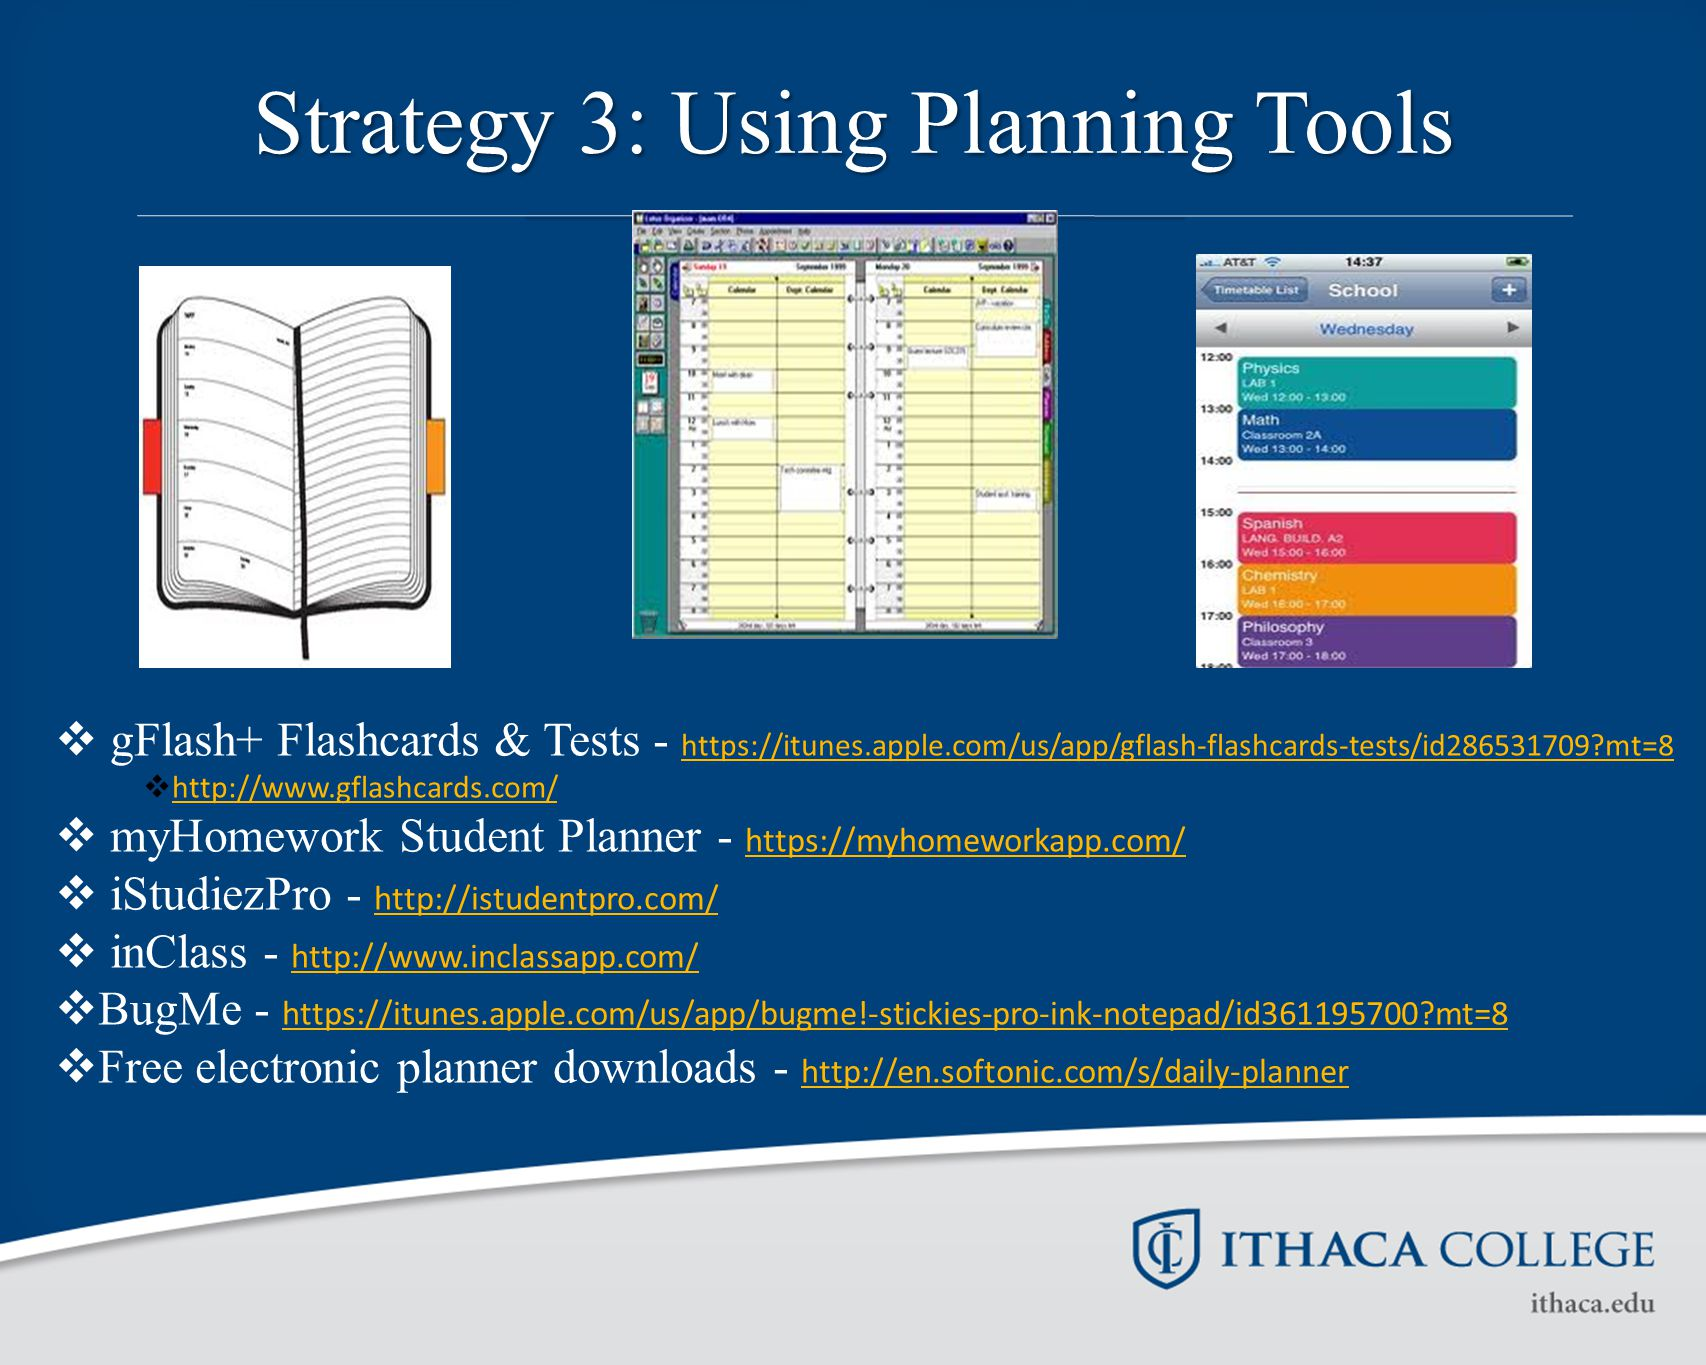 Strategy 3: Using Planning Tools  gFlash+ Flashcards & Tests - https://itunes.apple.com/us/app/gflash-flashcards-tests/id286531709 mt=8 https://itunes.apple.com/us/app/gflash-flashcards-tests/id286531709 mt=8  http://www.gflashcards.com/ http://www.gflashcards.com/  myHomework Student Planner - https://myhomeworkapp.com/ https://myhomeworkapp.com/  iStudiezPro - http://istudentpro.com/ http://istudentpro.com/  inClass - http://www.inclassapp.com/ http://www.inclassapp.com/  BugMe - https://itunes.apple.com/us/app/bugme!-stickies-pro-ink-notepad/id361195700 mt=8 https://itunes.apple.com/us/app/bugme!-stickies-pro-ink-notepad/id361195700 mt=8  Free electronic planner downloads - http://en.softonic.com/s/daily-planner http://en.softonic.com/s/daily-planner